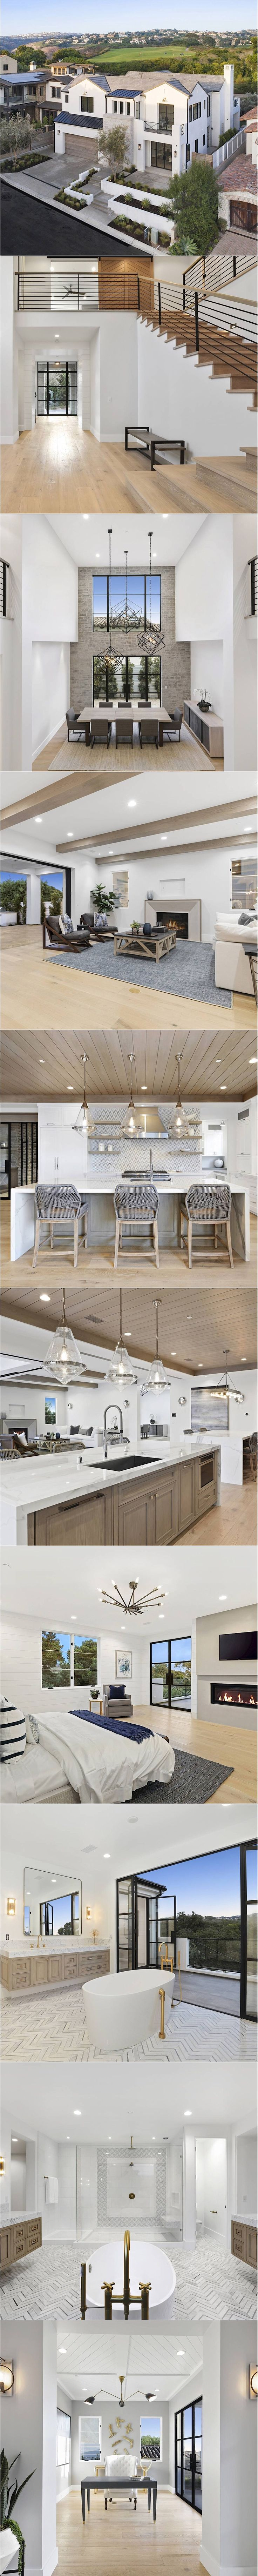 Renown custom homebuilder, Brixton Developers & Co., presents one of Corona del Mar's finest new custom homes. This modern transitional masterpiece epitomizes stylish coastal living and offers ocean & golf course views in the highly-regarded community of Corona Highlands. Light & bright interiors define the home's sophisticated living spaces which are accentuated by stunning architectural […]